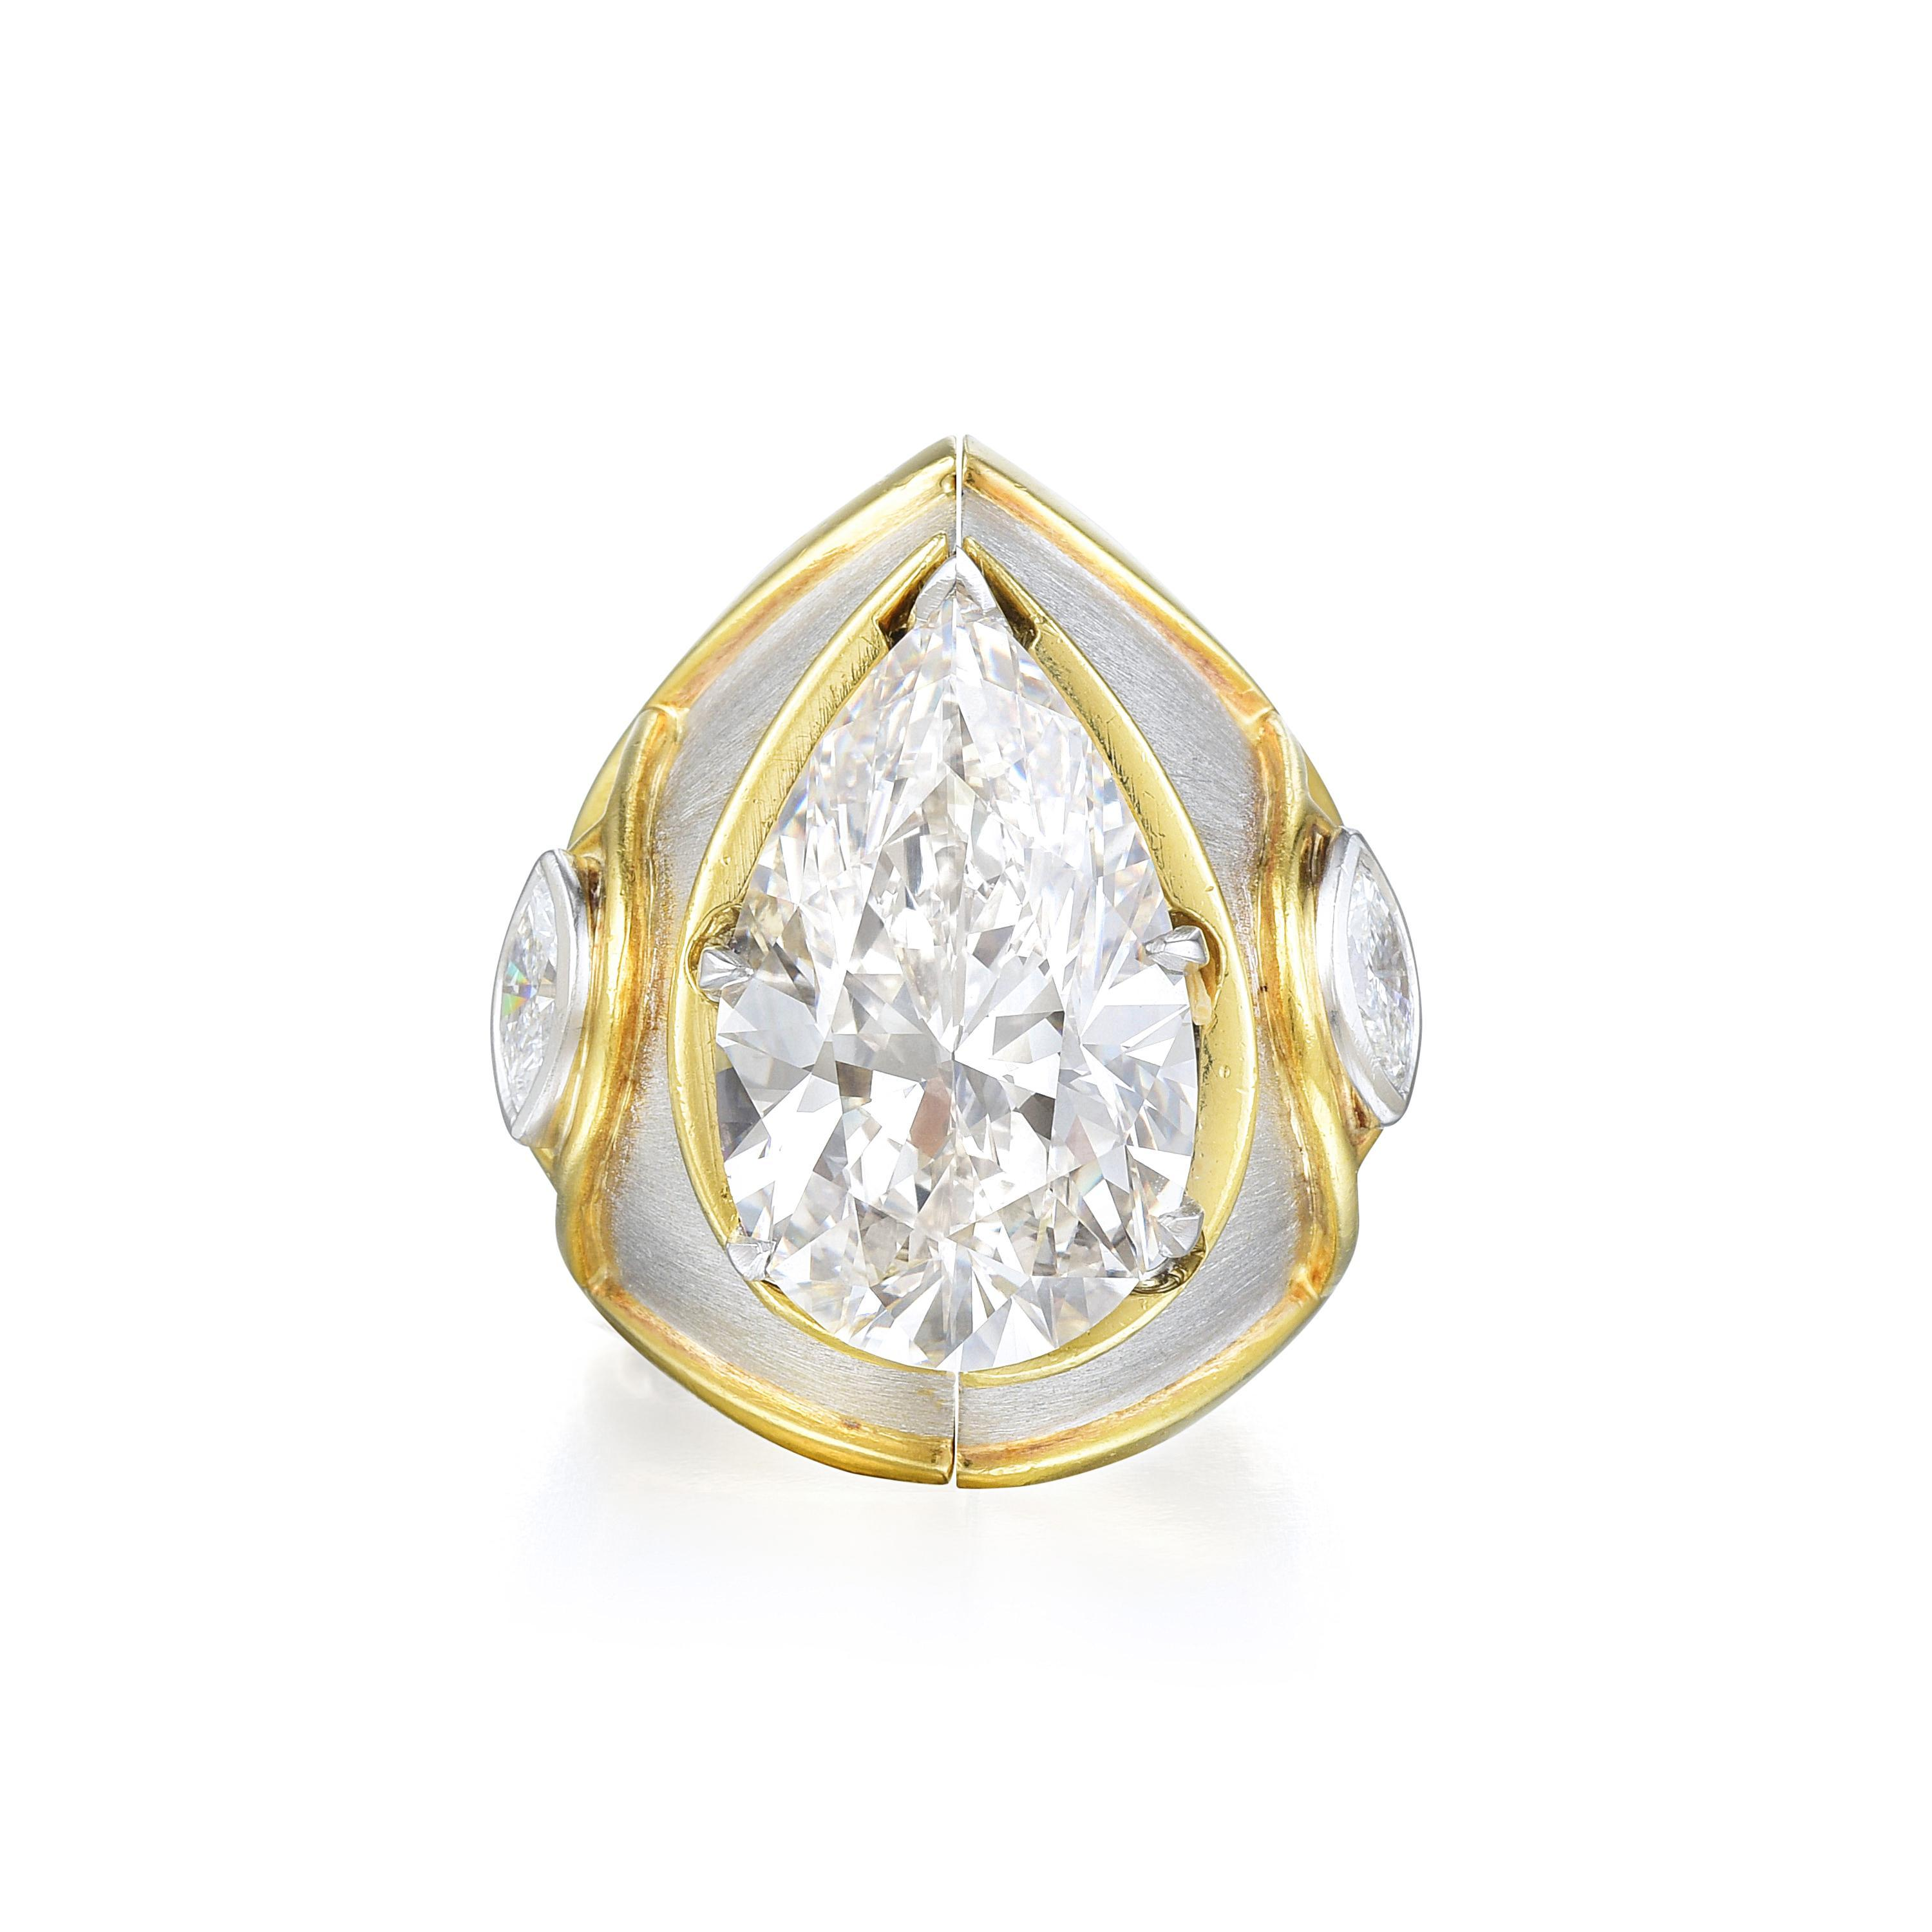 10.87ct Pear-Shaped Diamond Ring & Jacket